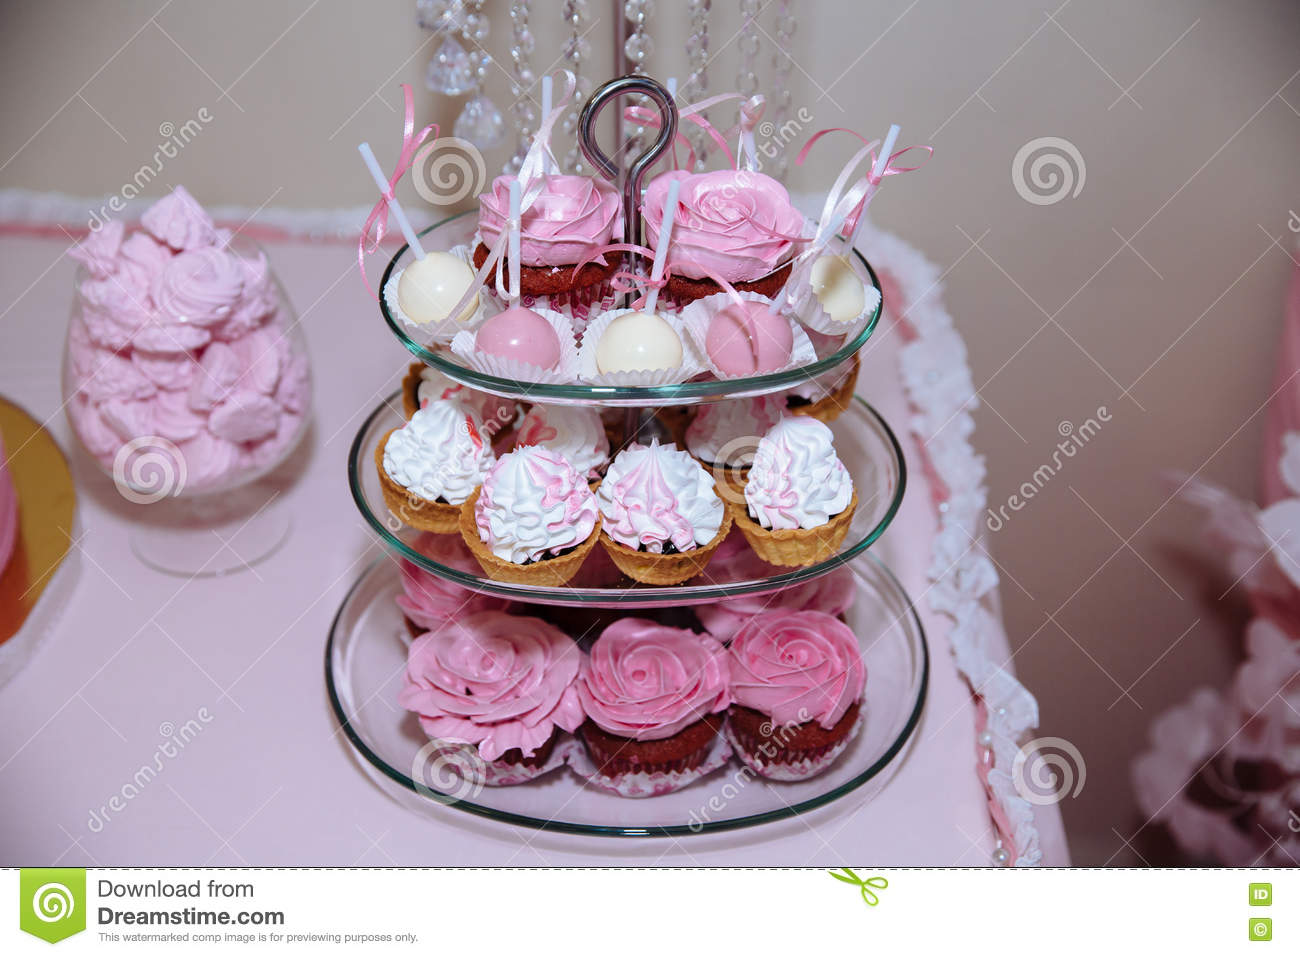 Wedding Cake. Candy Bar Marshmallow On The Table In A Vase, Macaroon ...